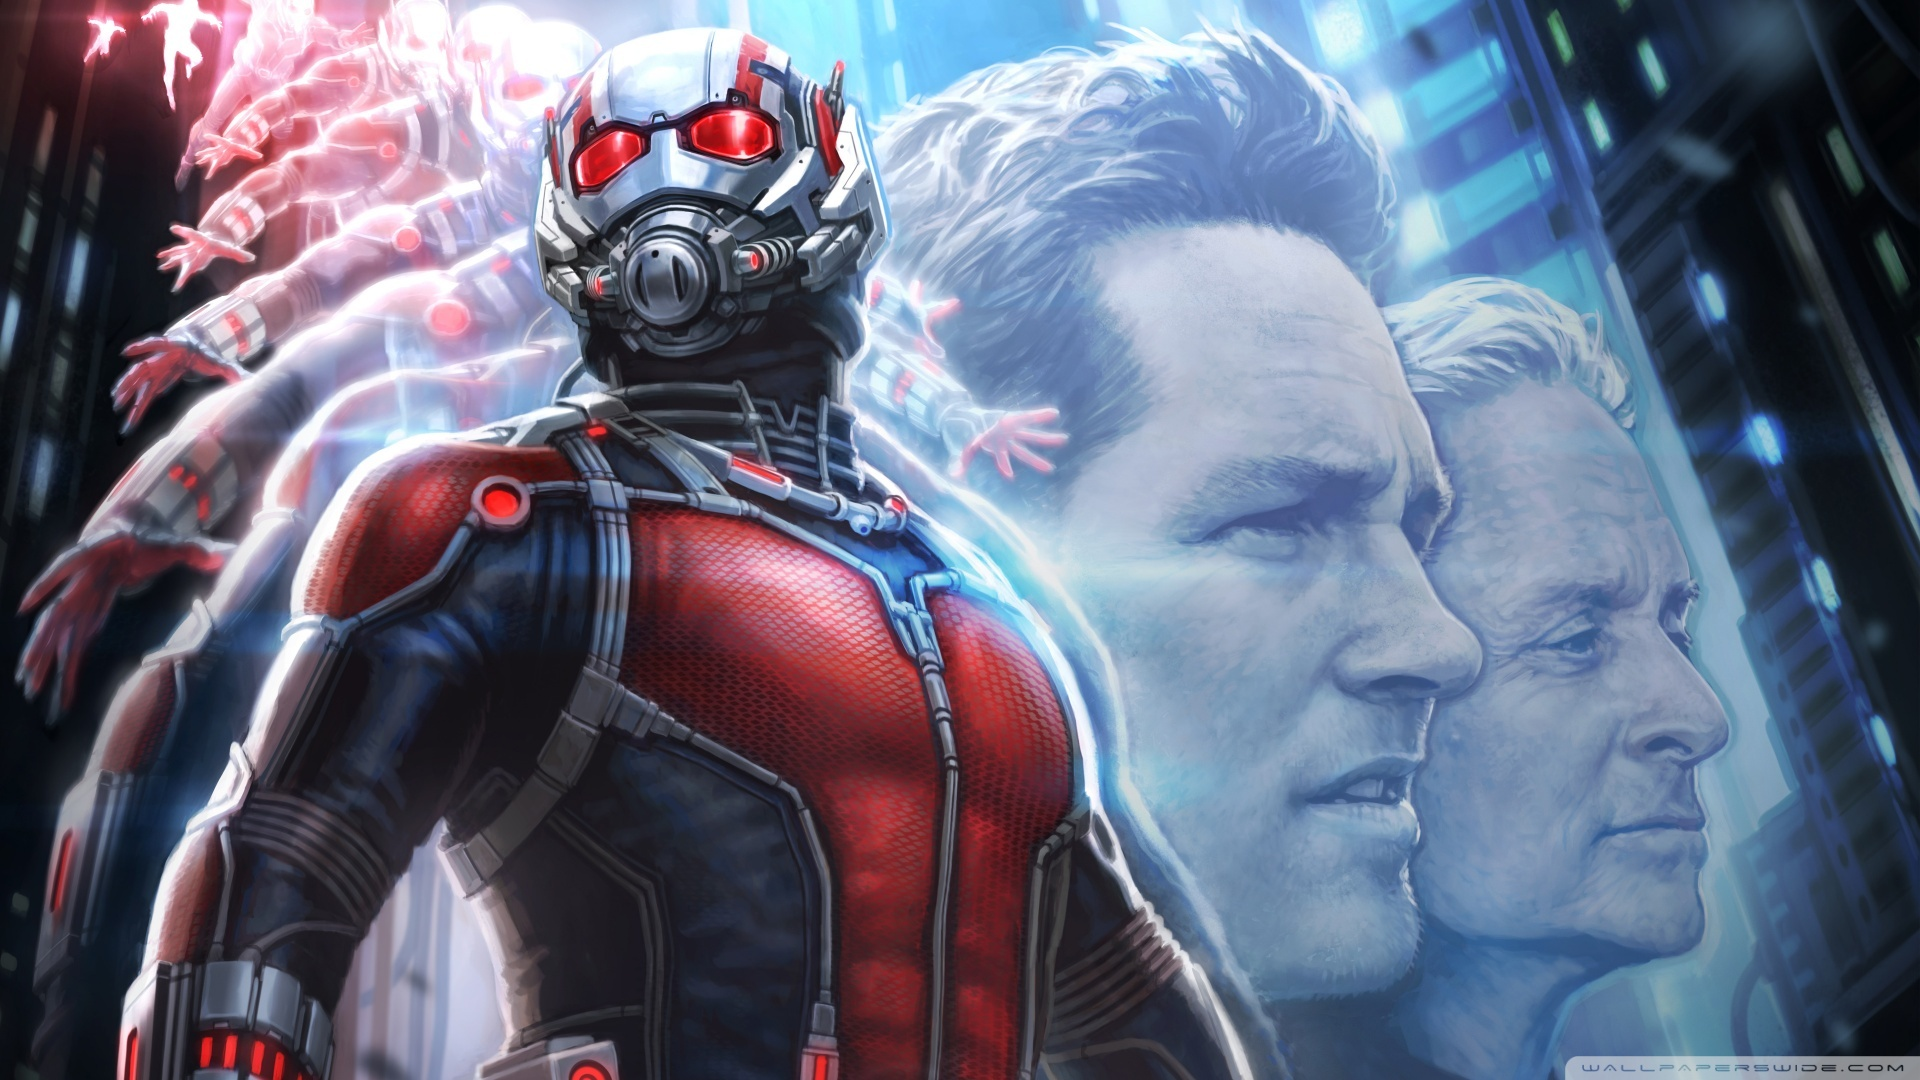 Ant Man Wallpaper Full HD [1920x1080]   wallpaper full hd 1080p 1920x1080